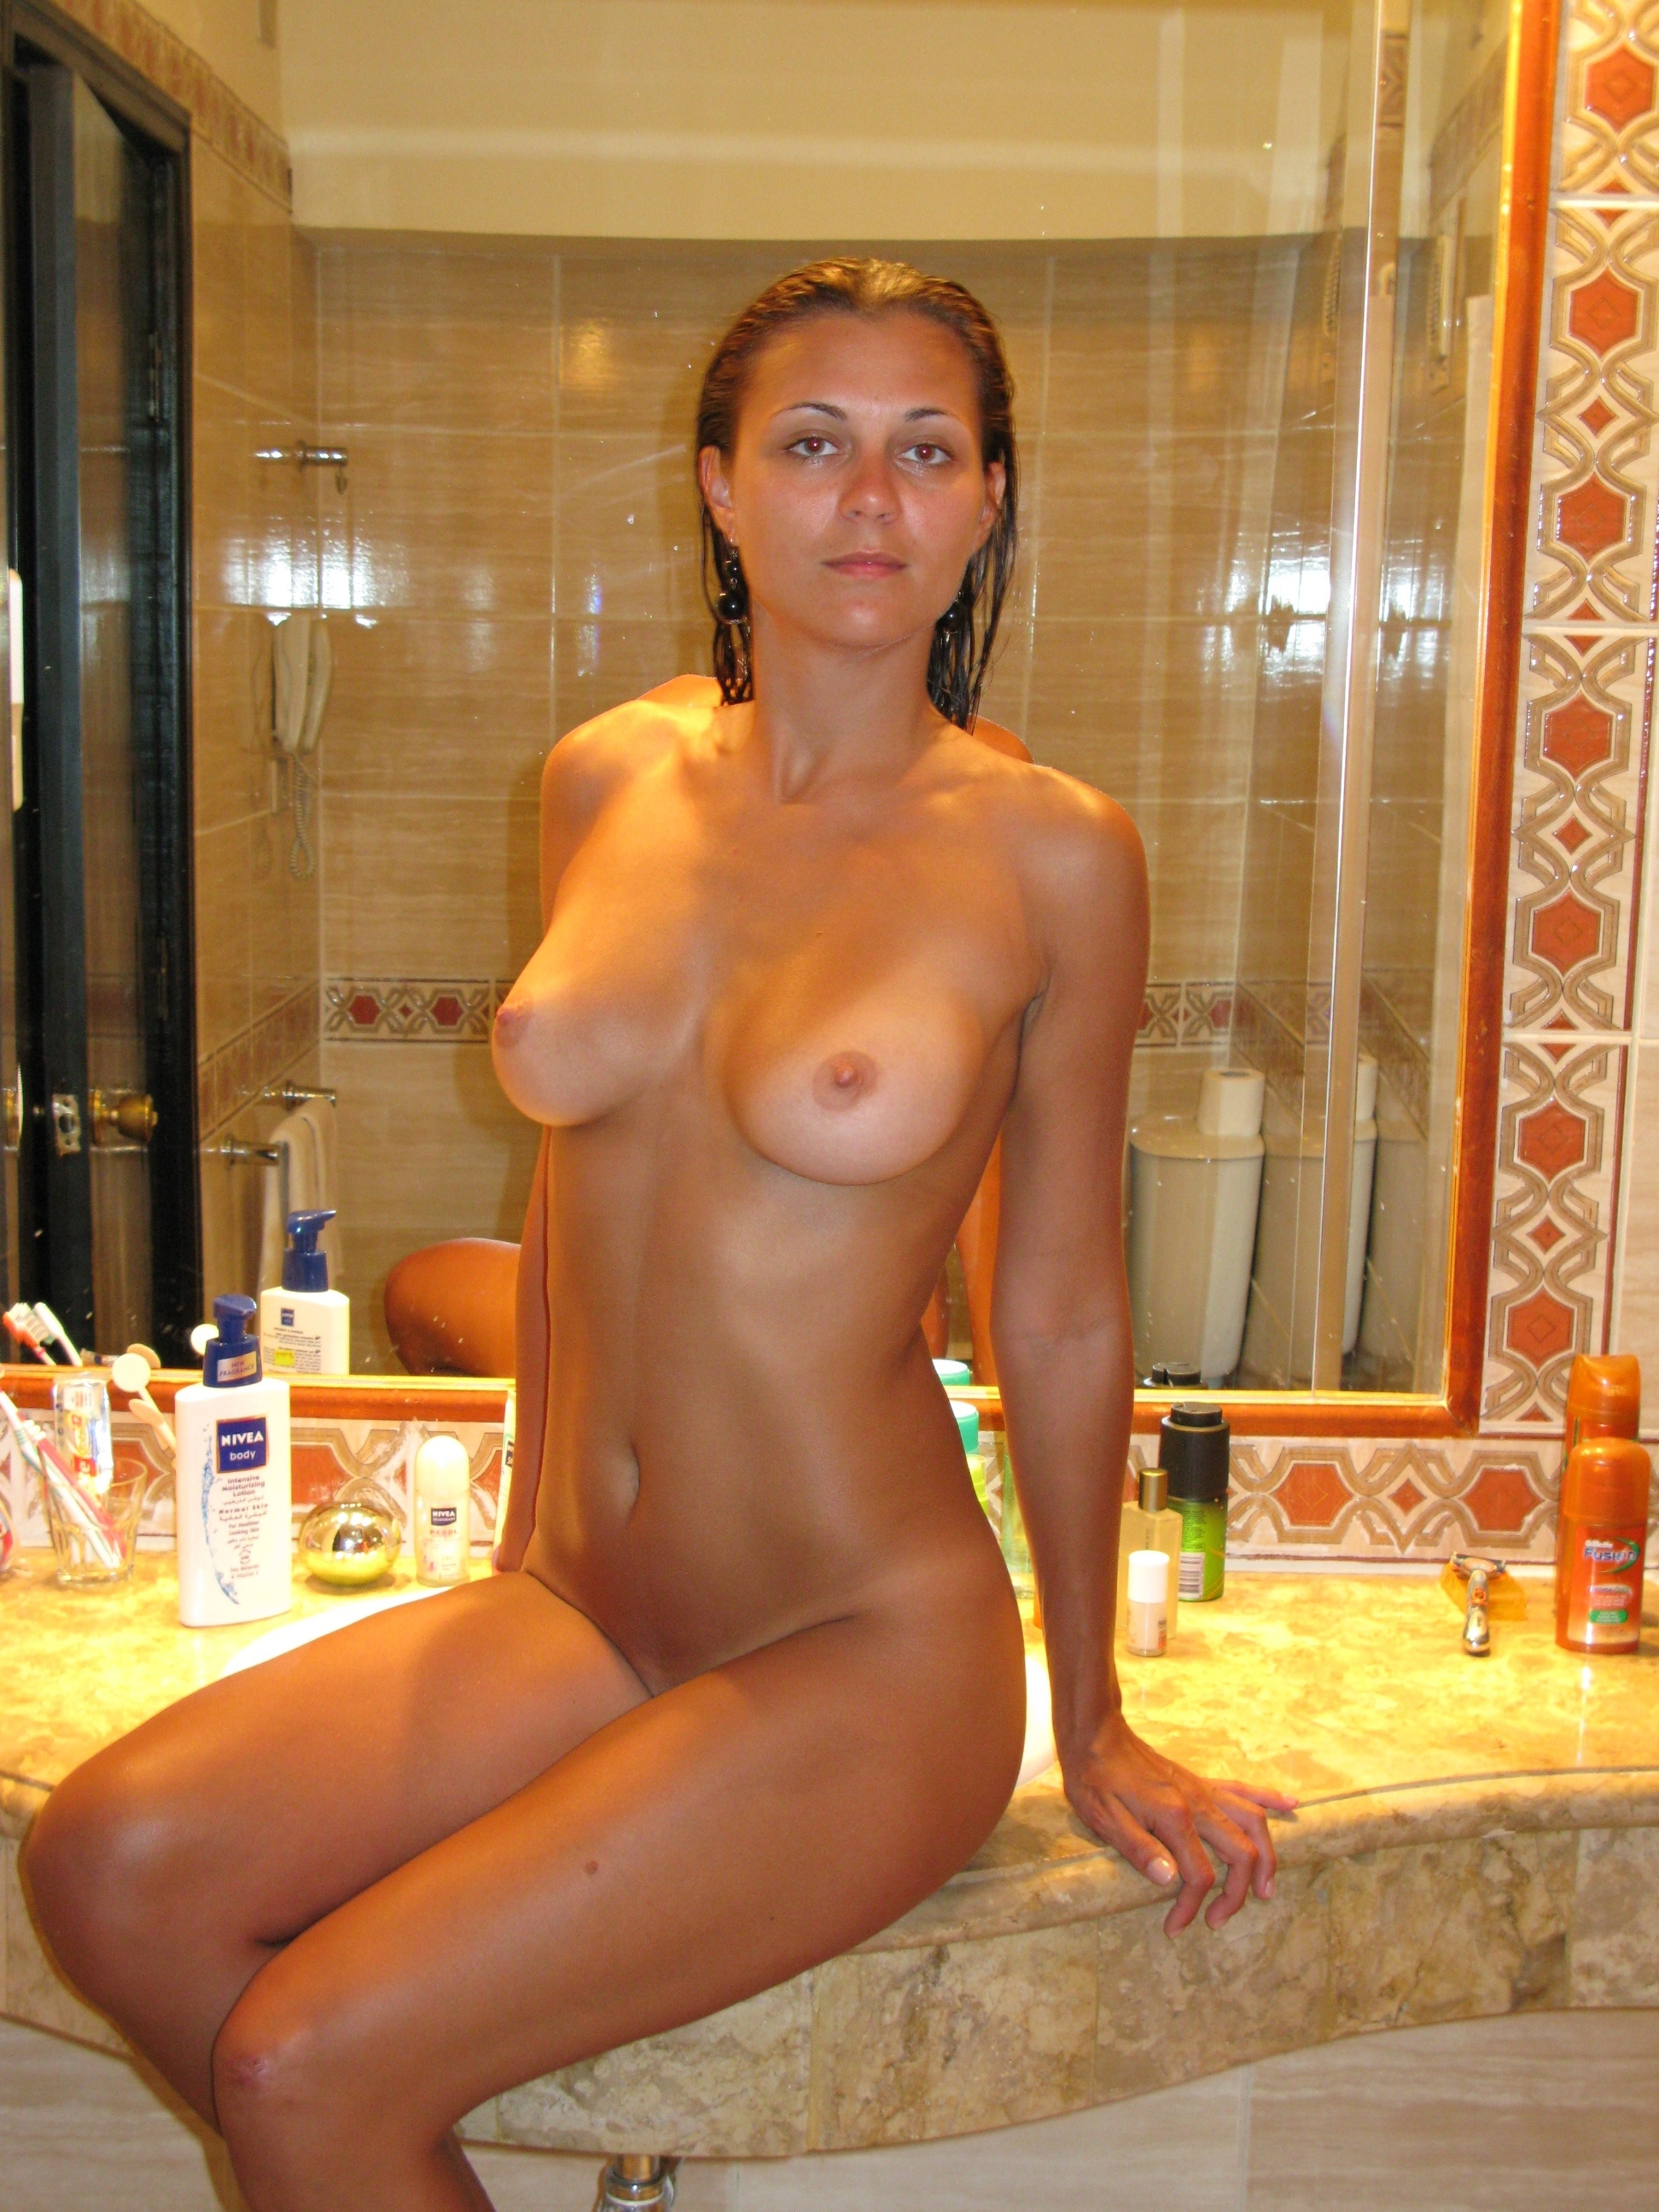 Perfect body nude amateur on vacation 16 RedBust